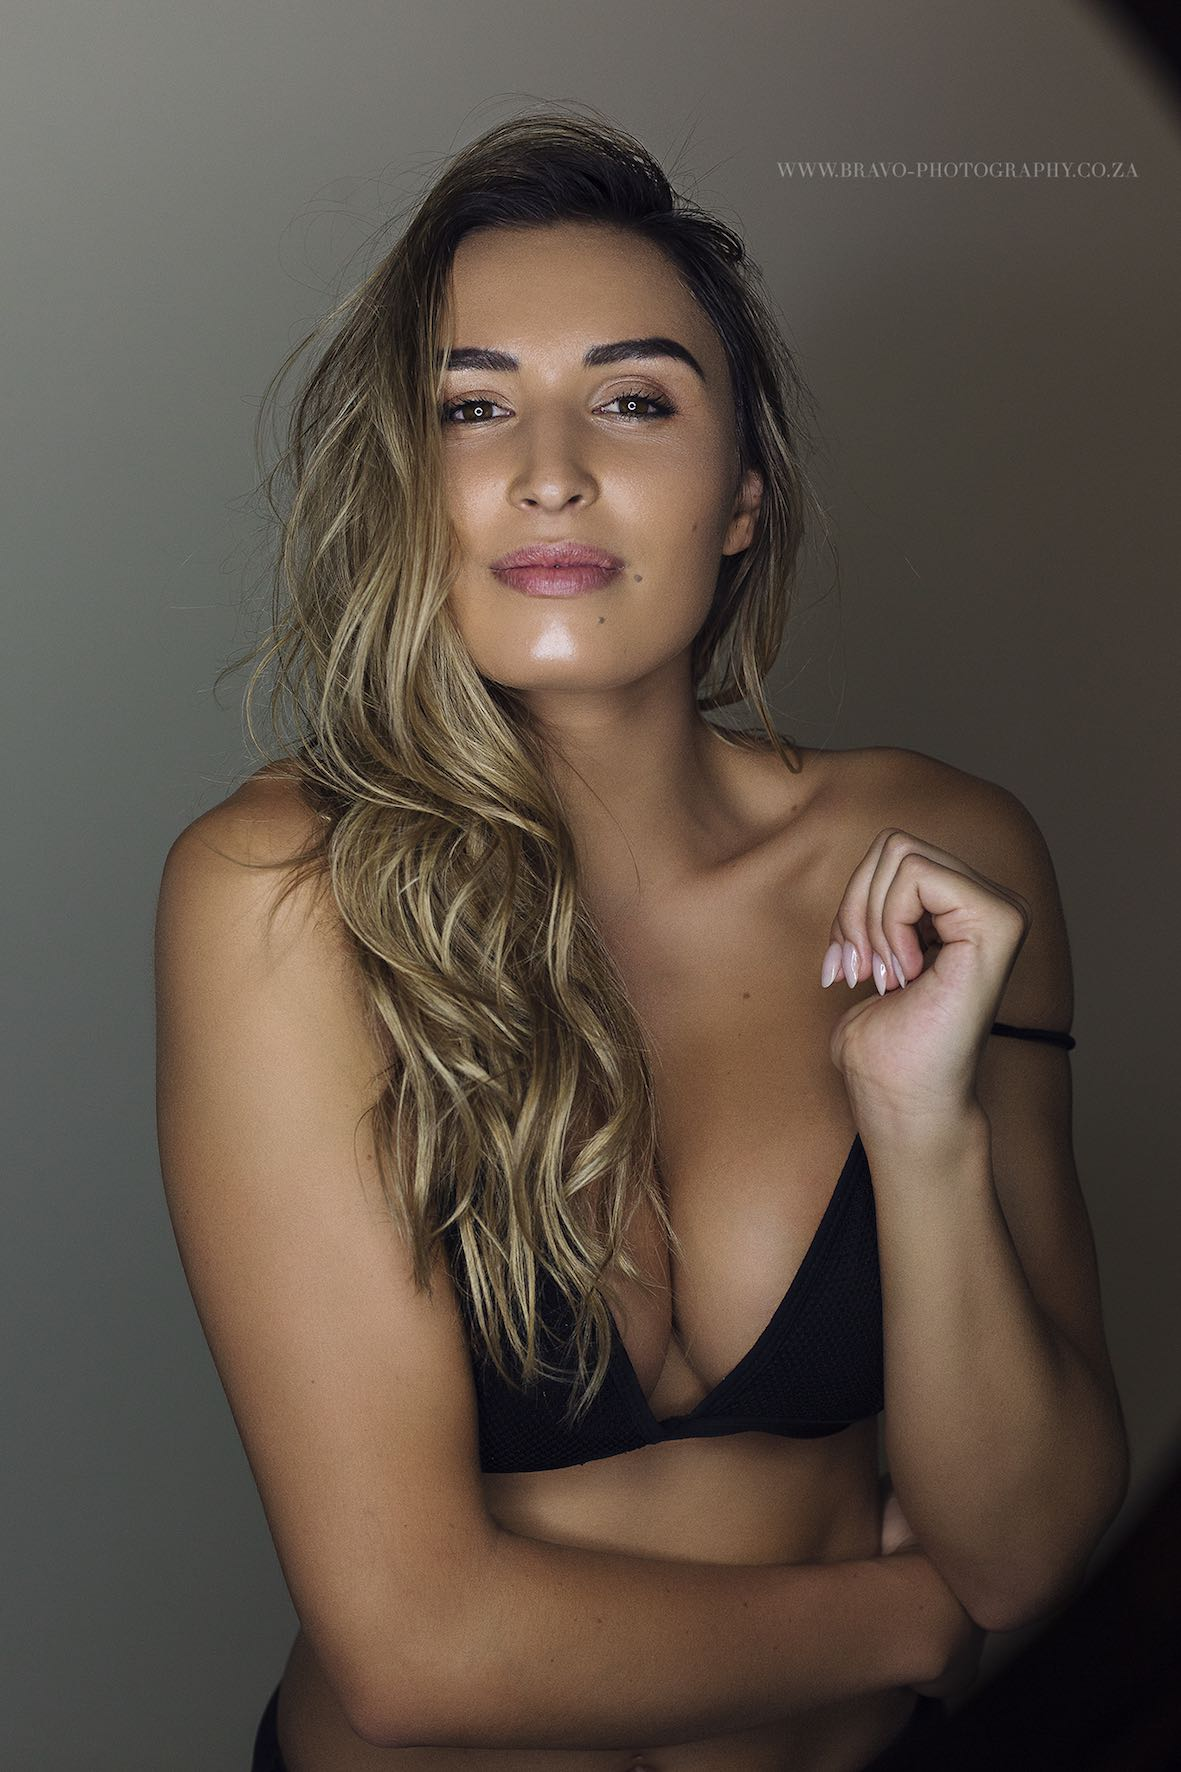 Our SA Babes feature with Vilécha du Plessis